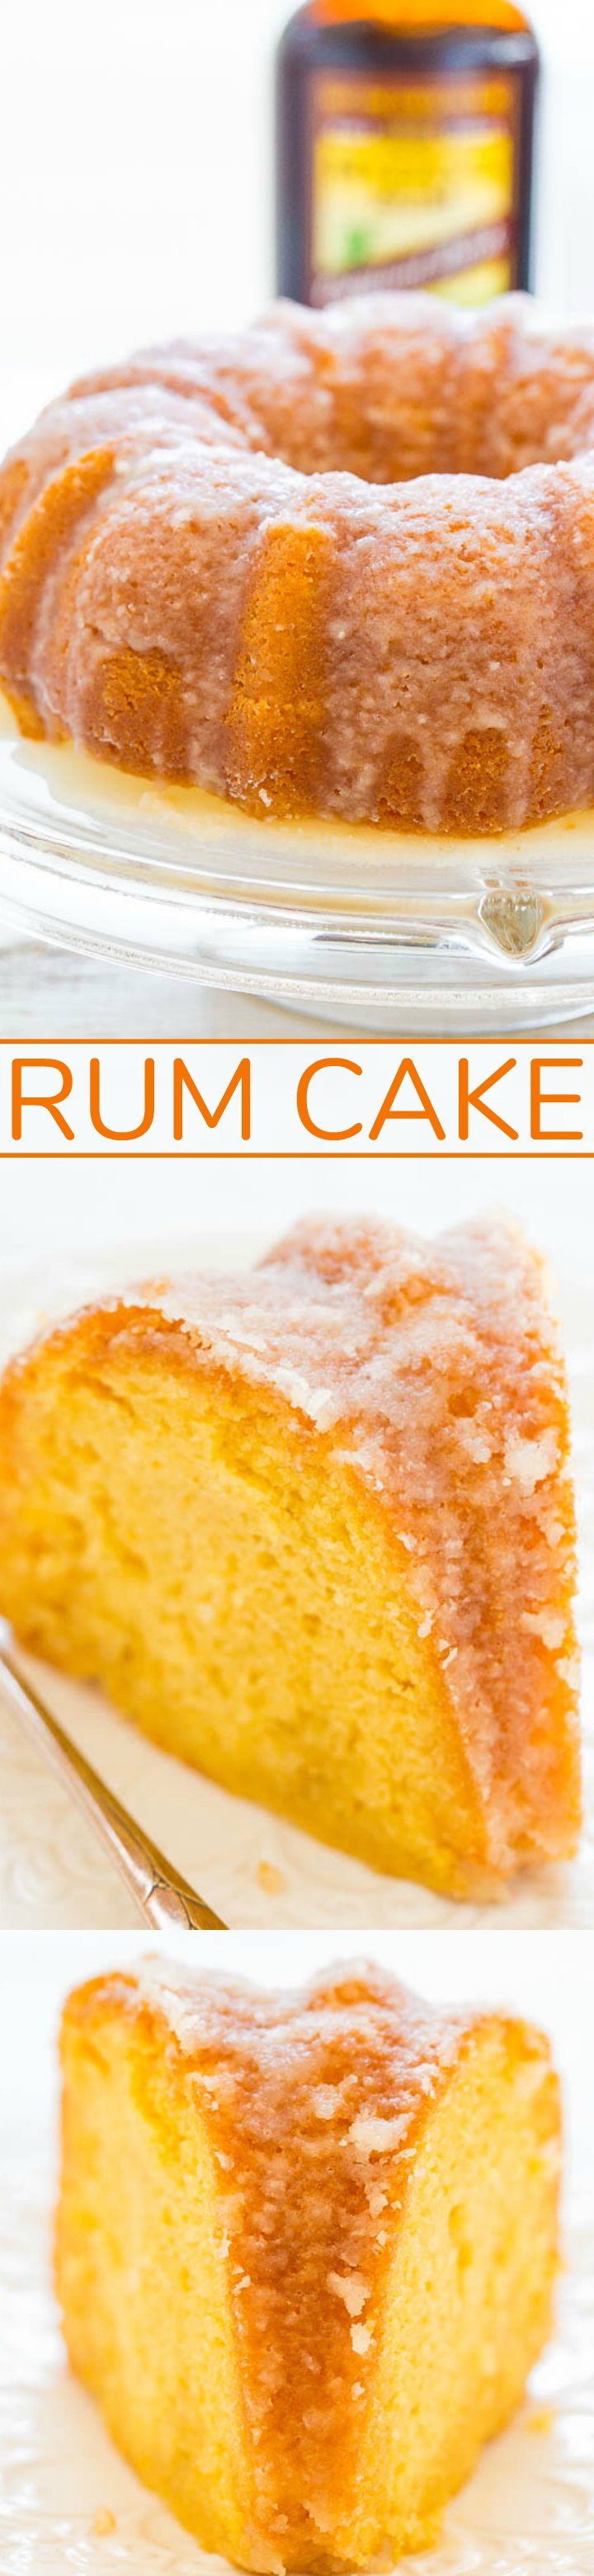 Rum Cake - A double dose of rum in this EASY cake that's supremely moist, buttery, and literally juicy from all the rum!! The perfect make-ahead holiday entertaining cake that everyone will LOVE!!